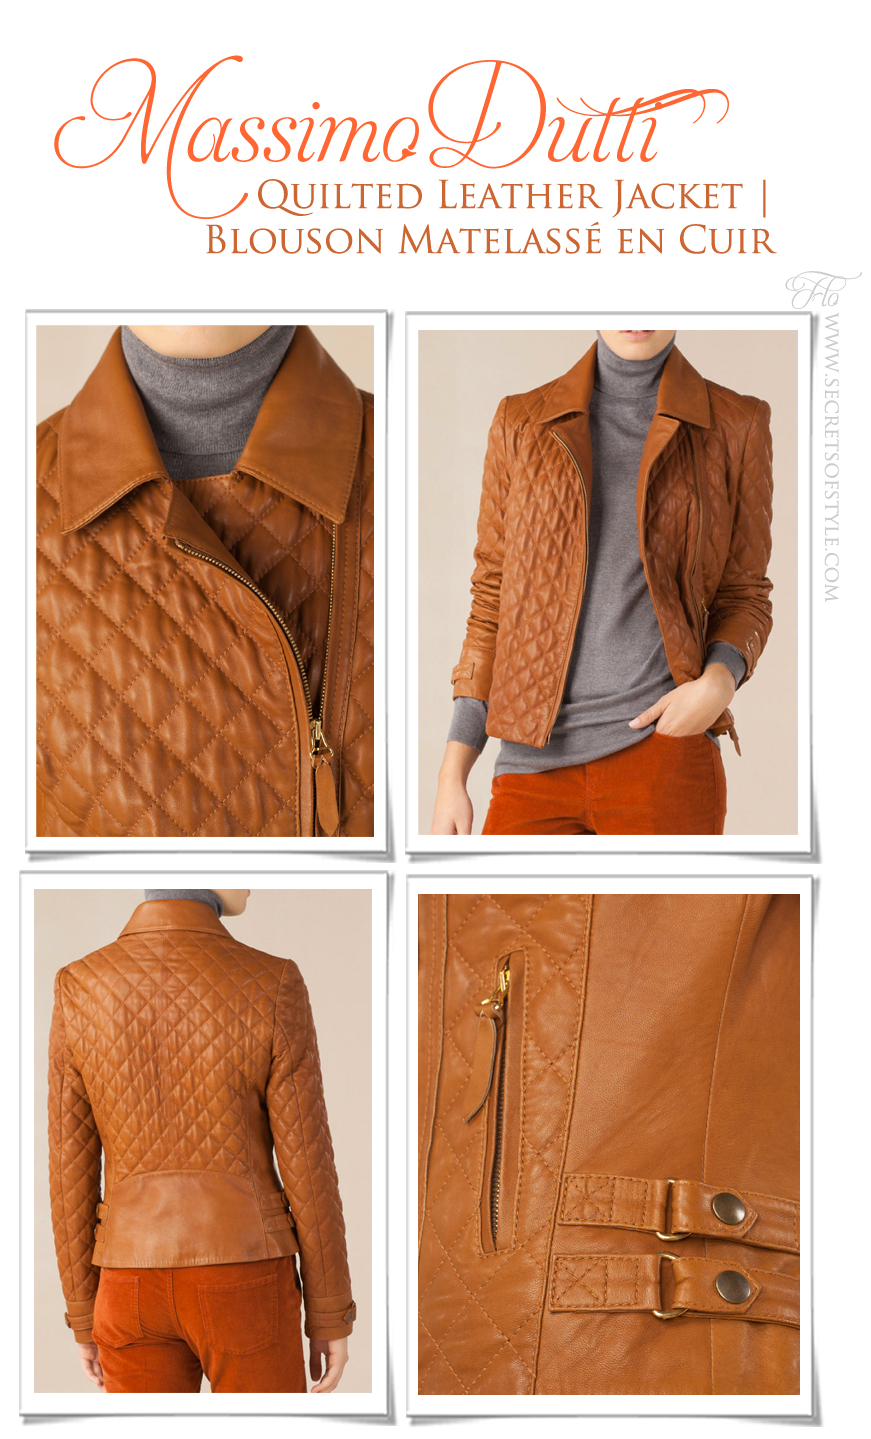 Massimo Dutti Quilted Leather Jacket | Blouson Matelassé en Cuir